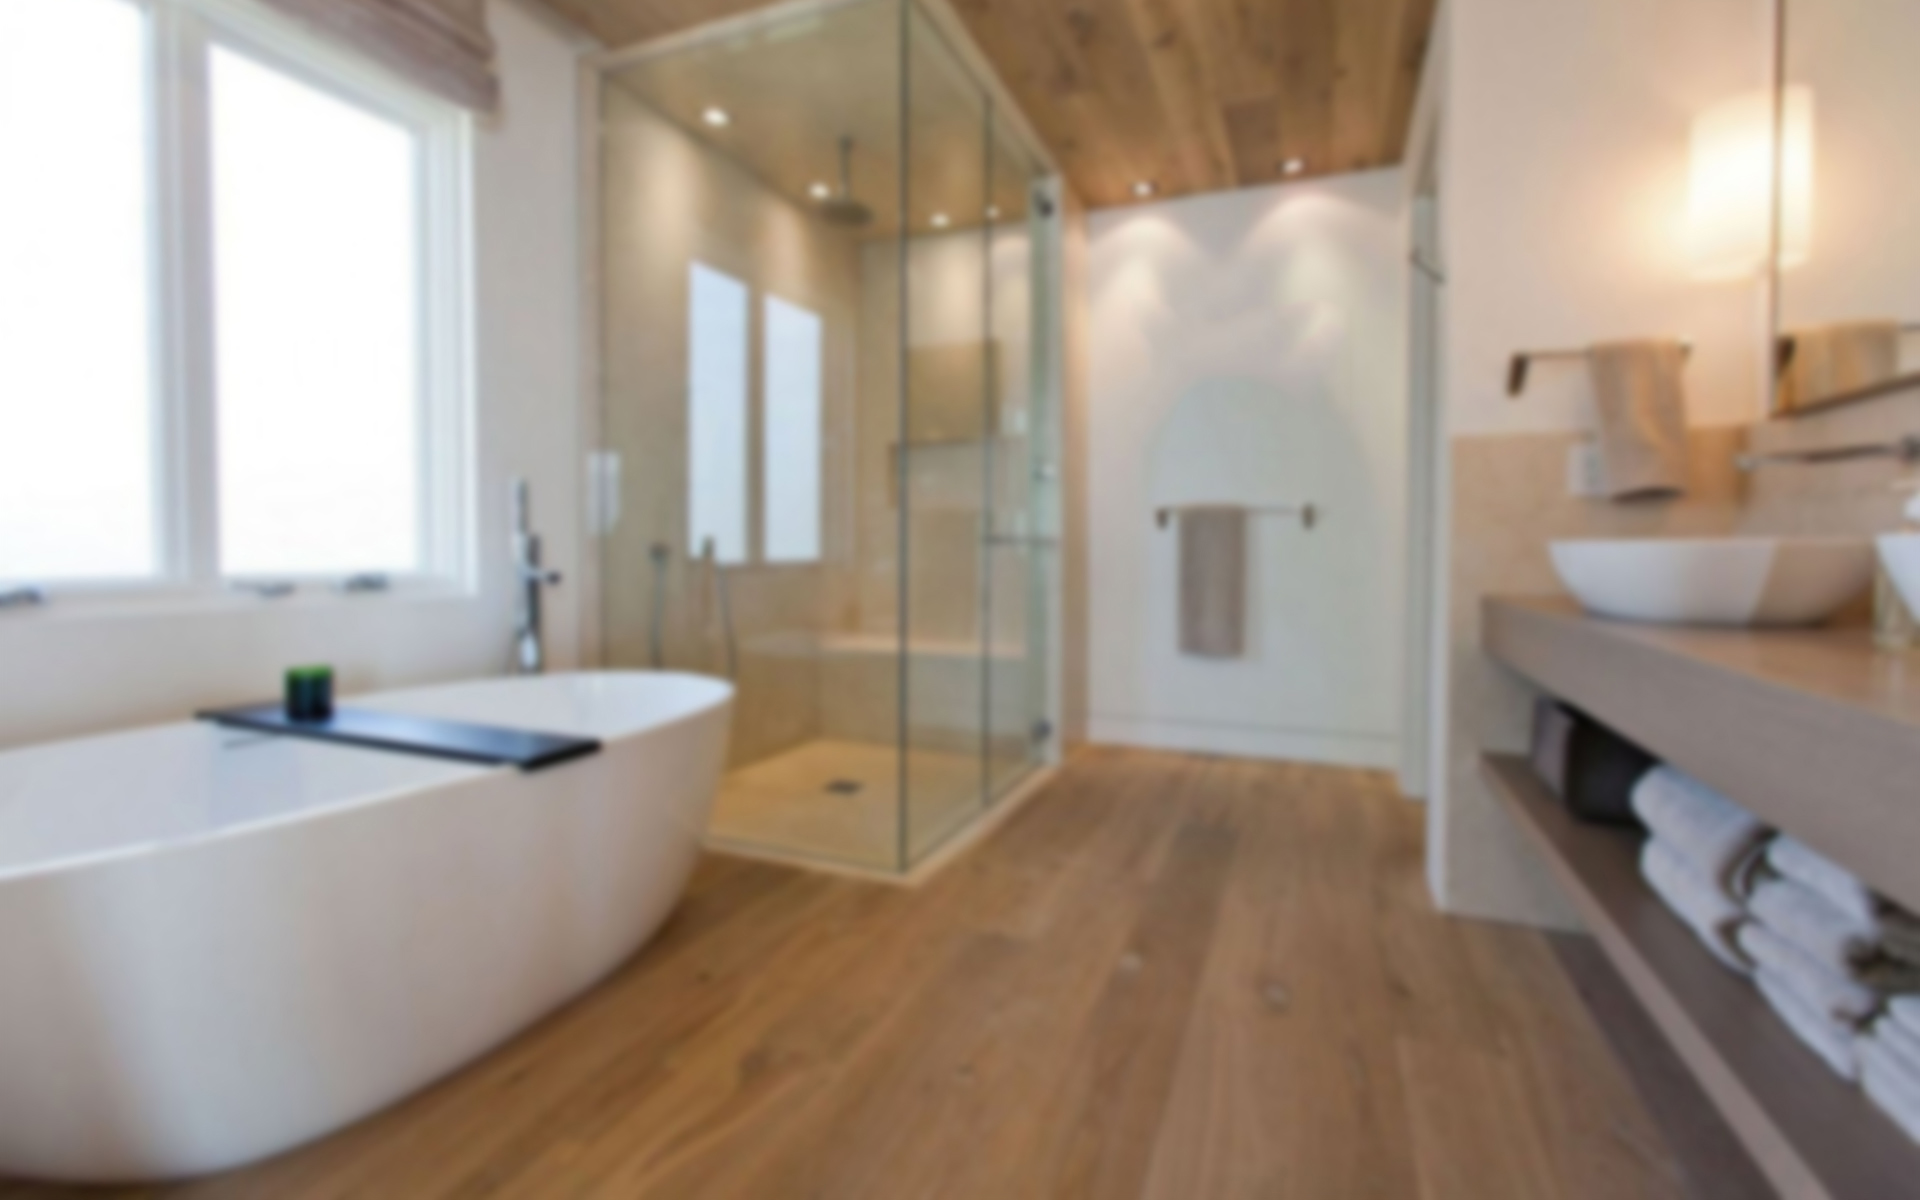 Bathroom Renovations Melbourne By Melbourne Bathroom Company